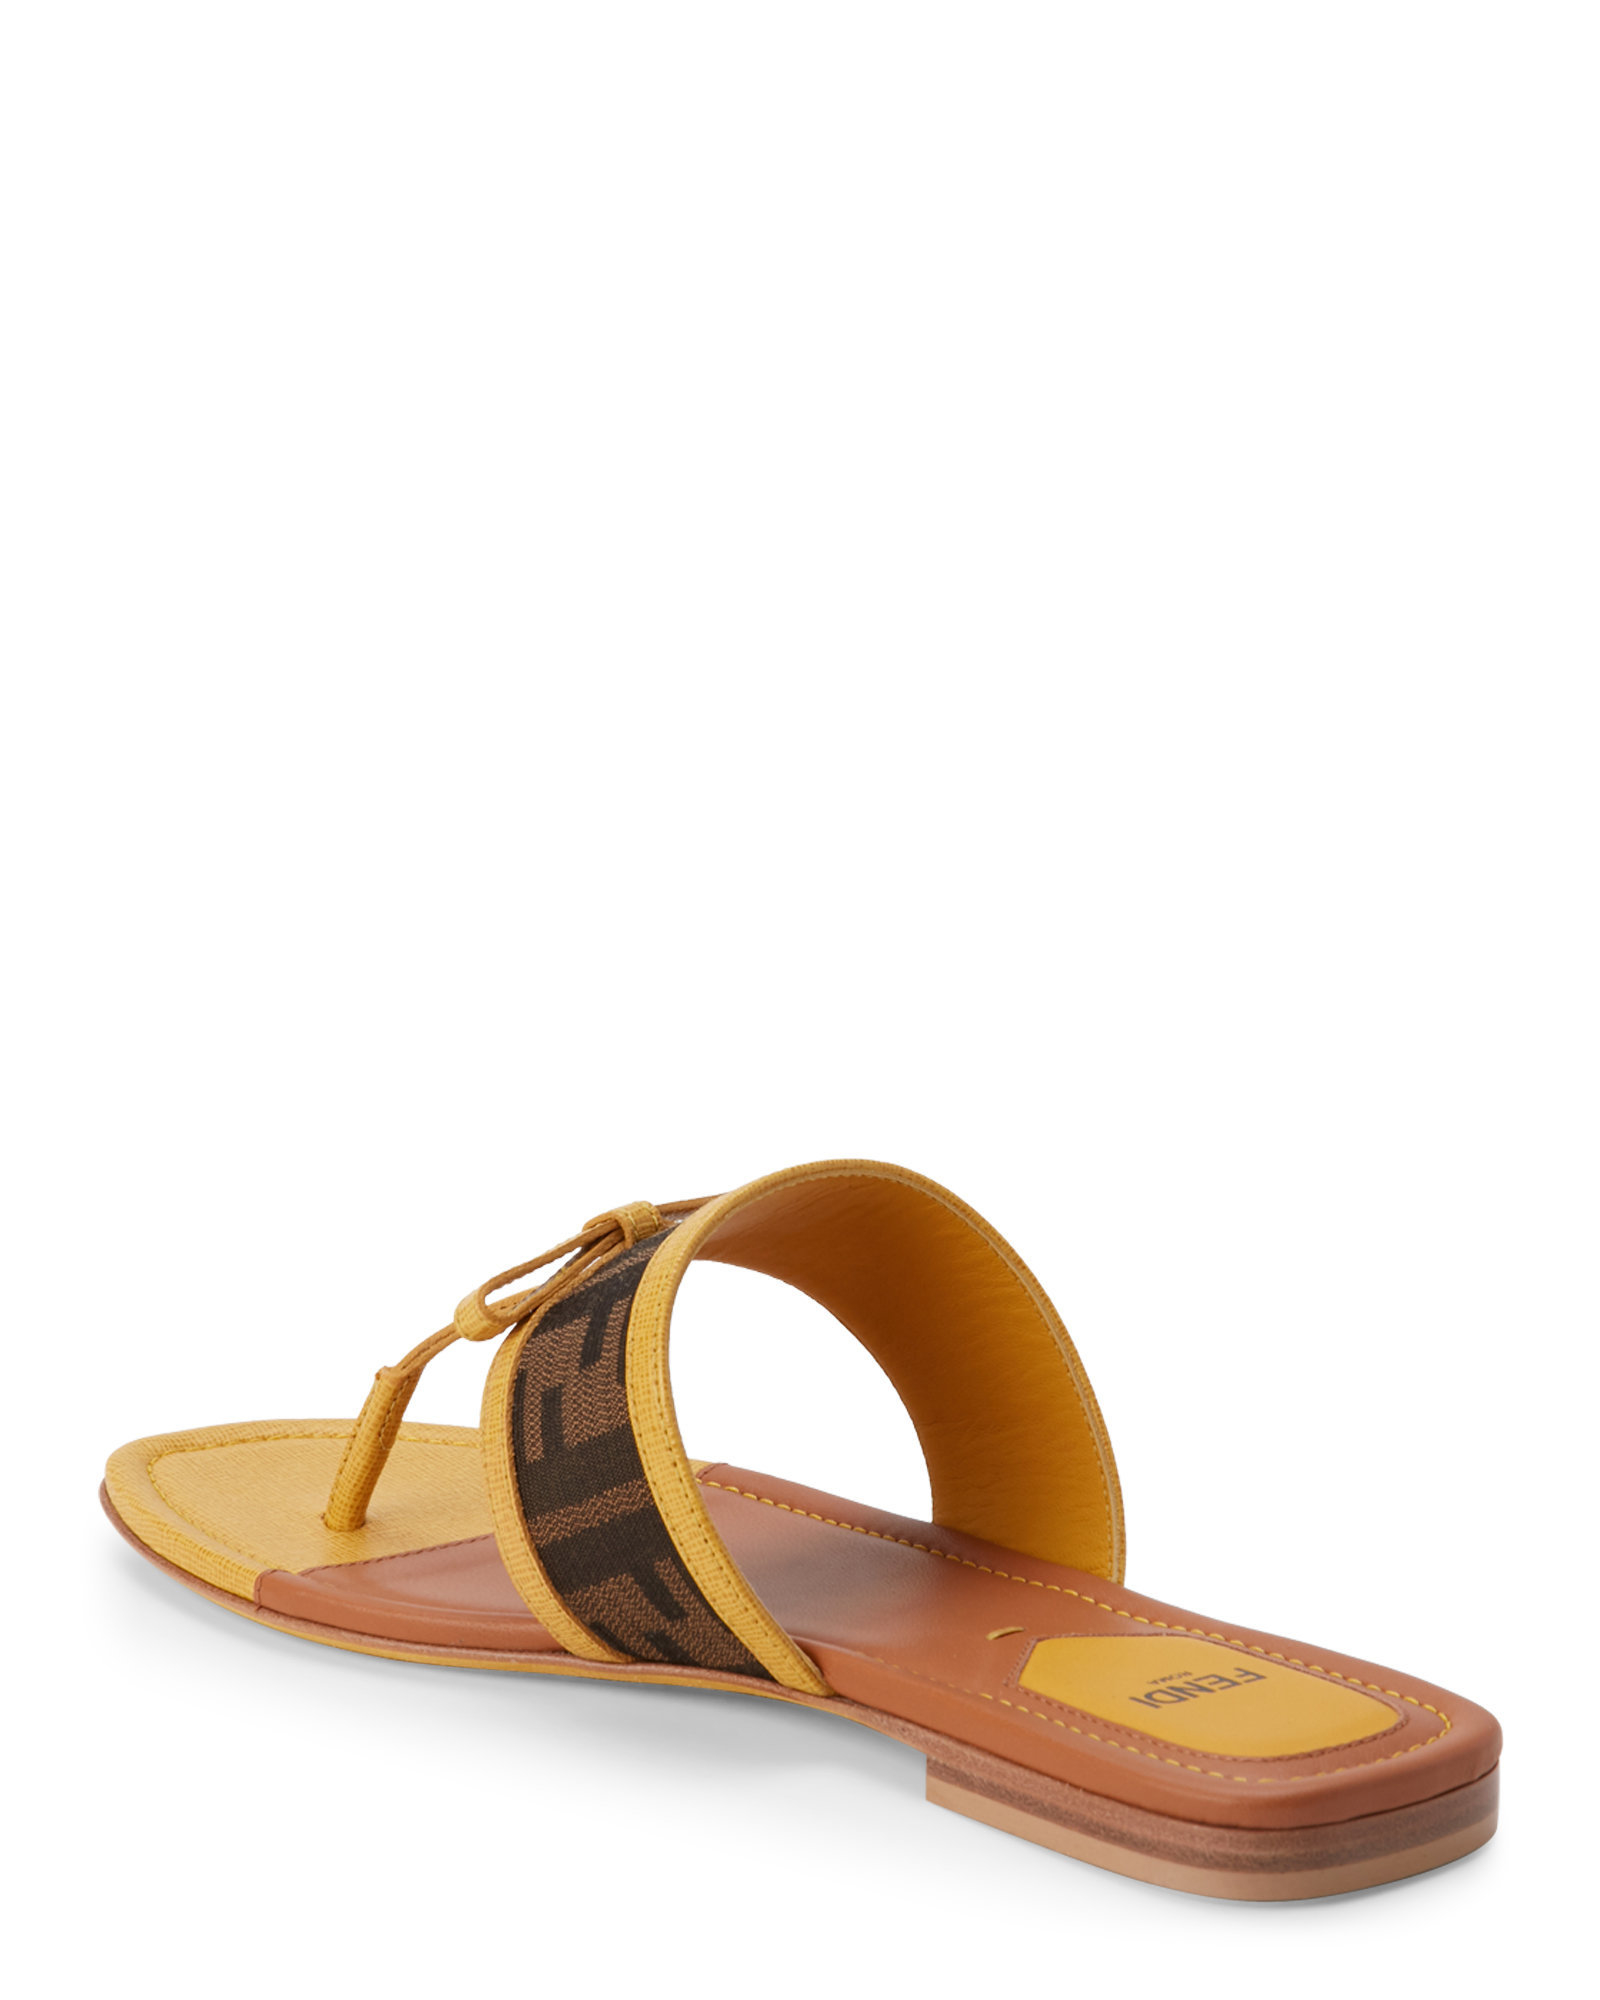 06964080be474a Lyst - Fendi Tobacco   Mustard Zucca Thong Sandals in Brown